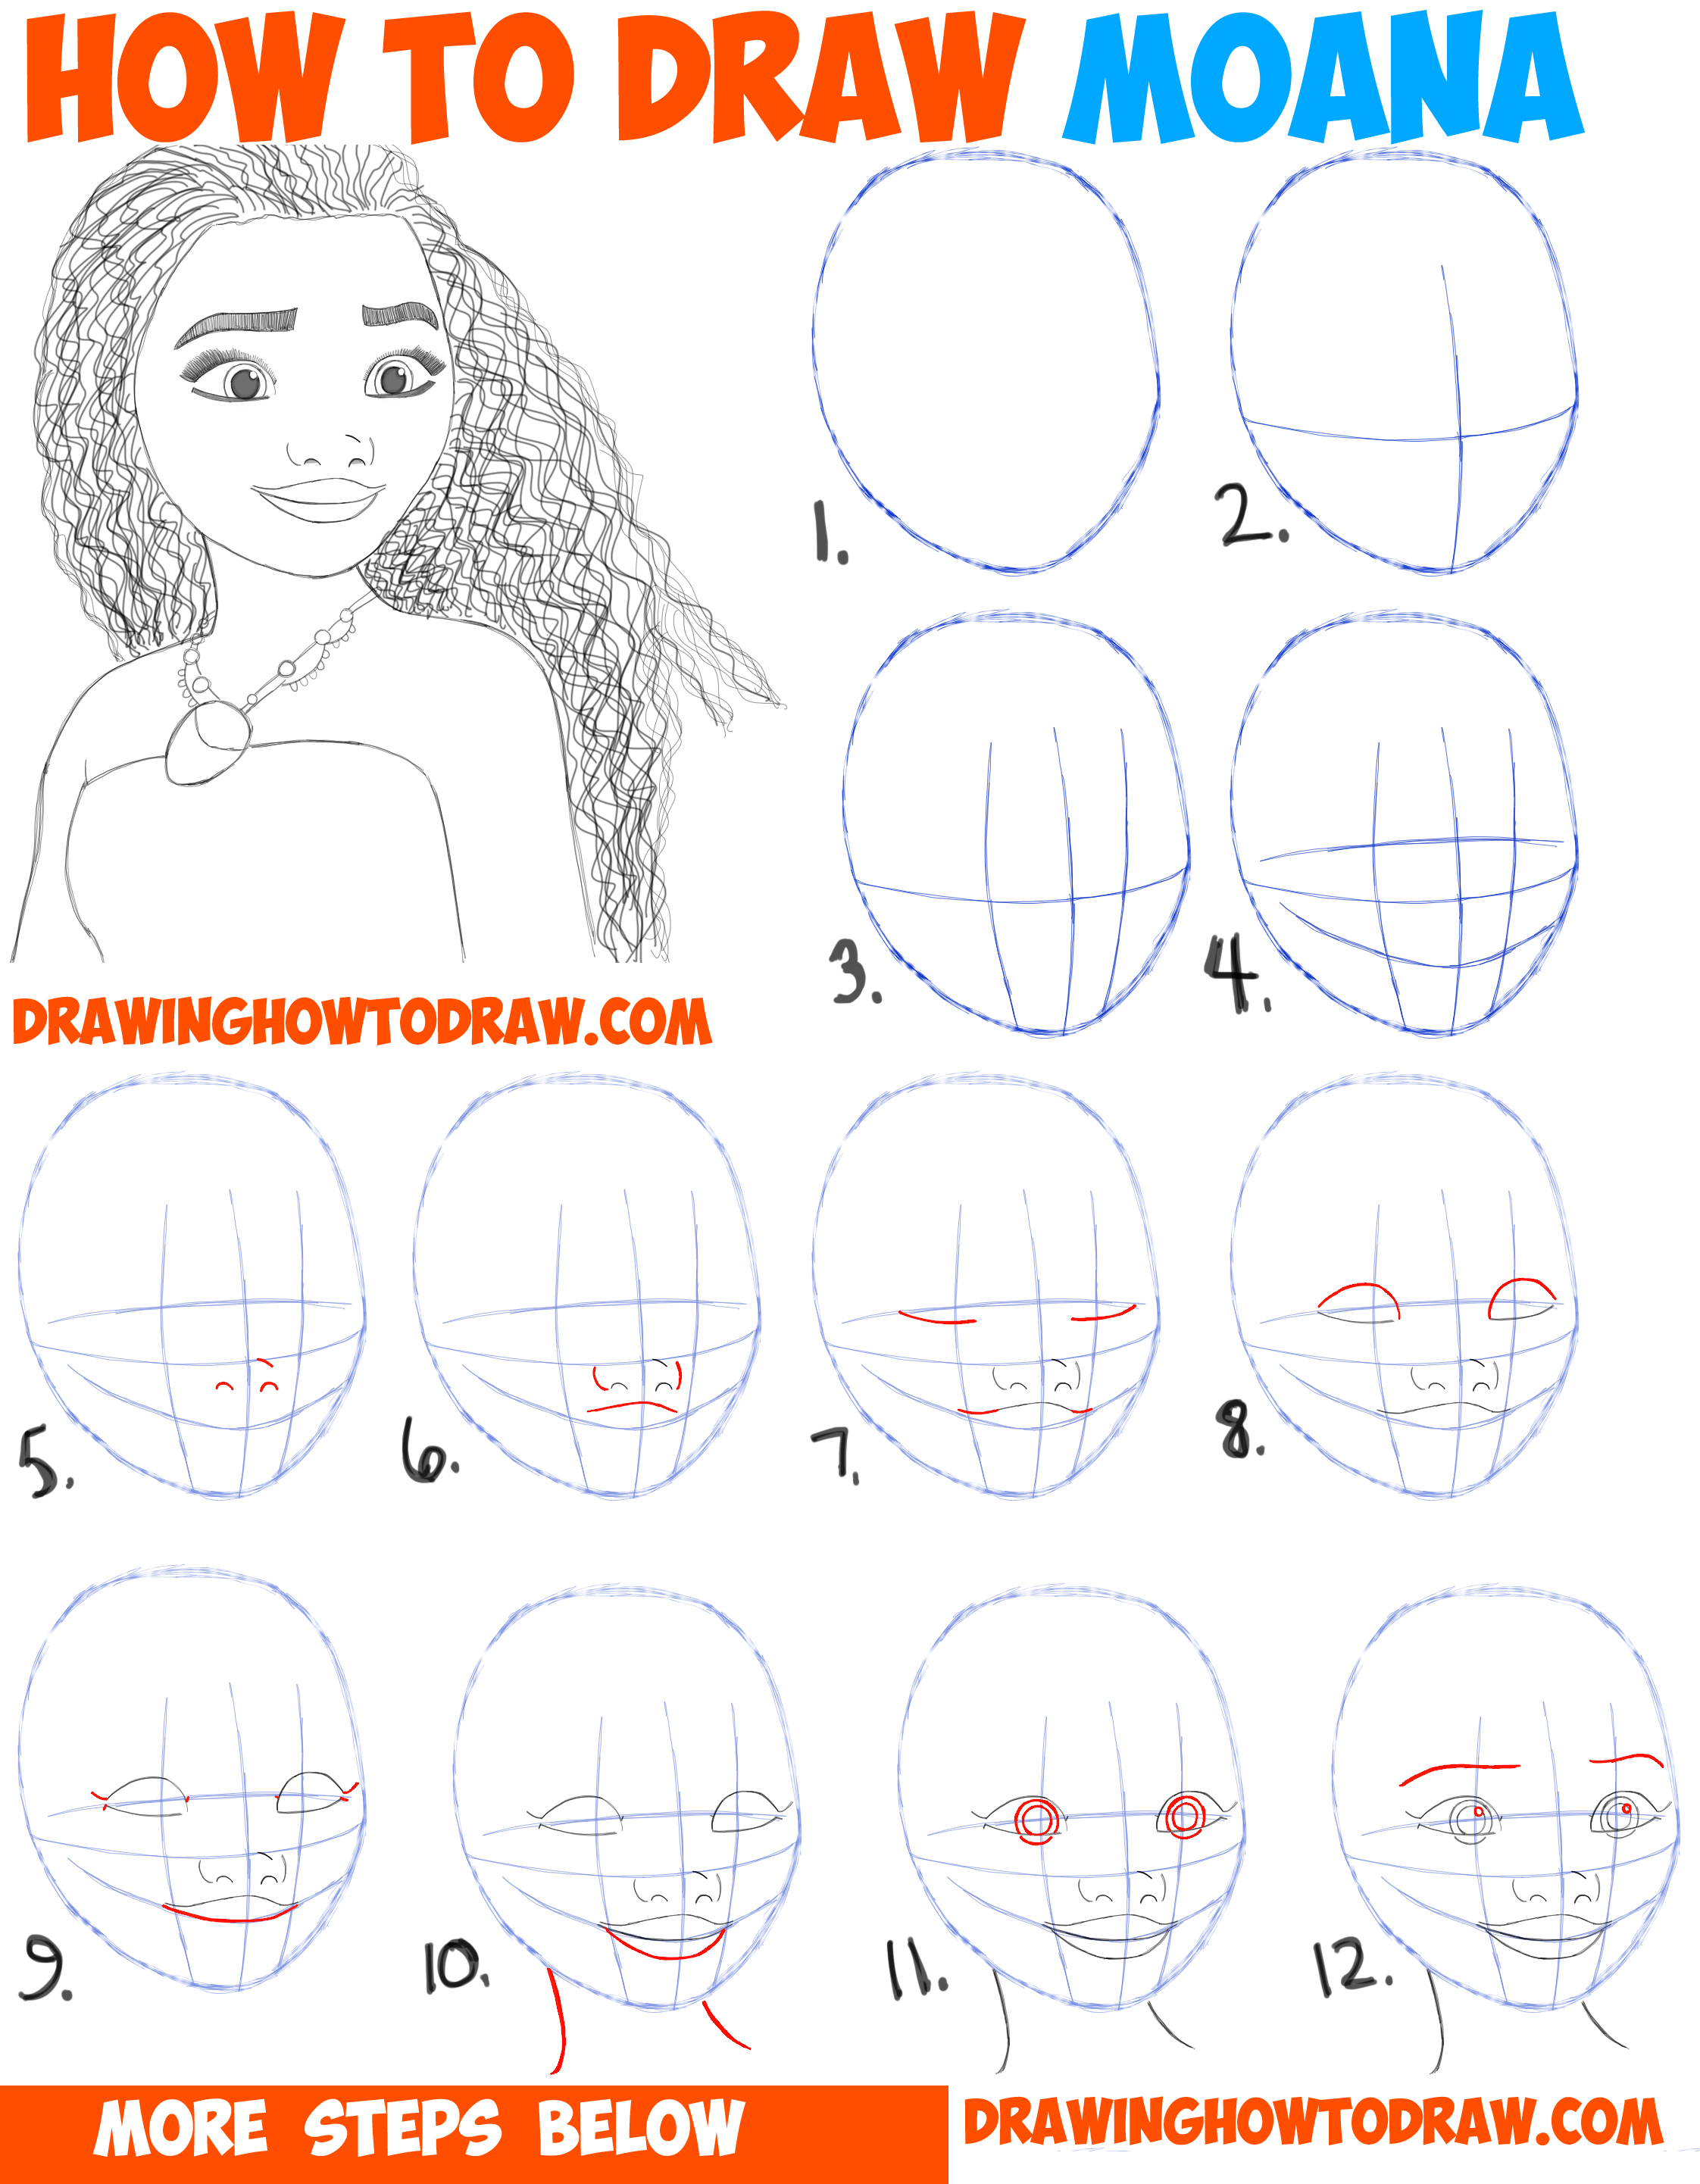 How to draw moana easy step by step drawing tutorial for kids and beginners